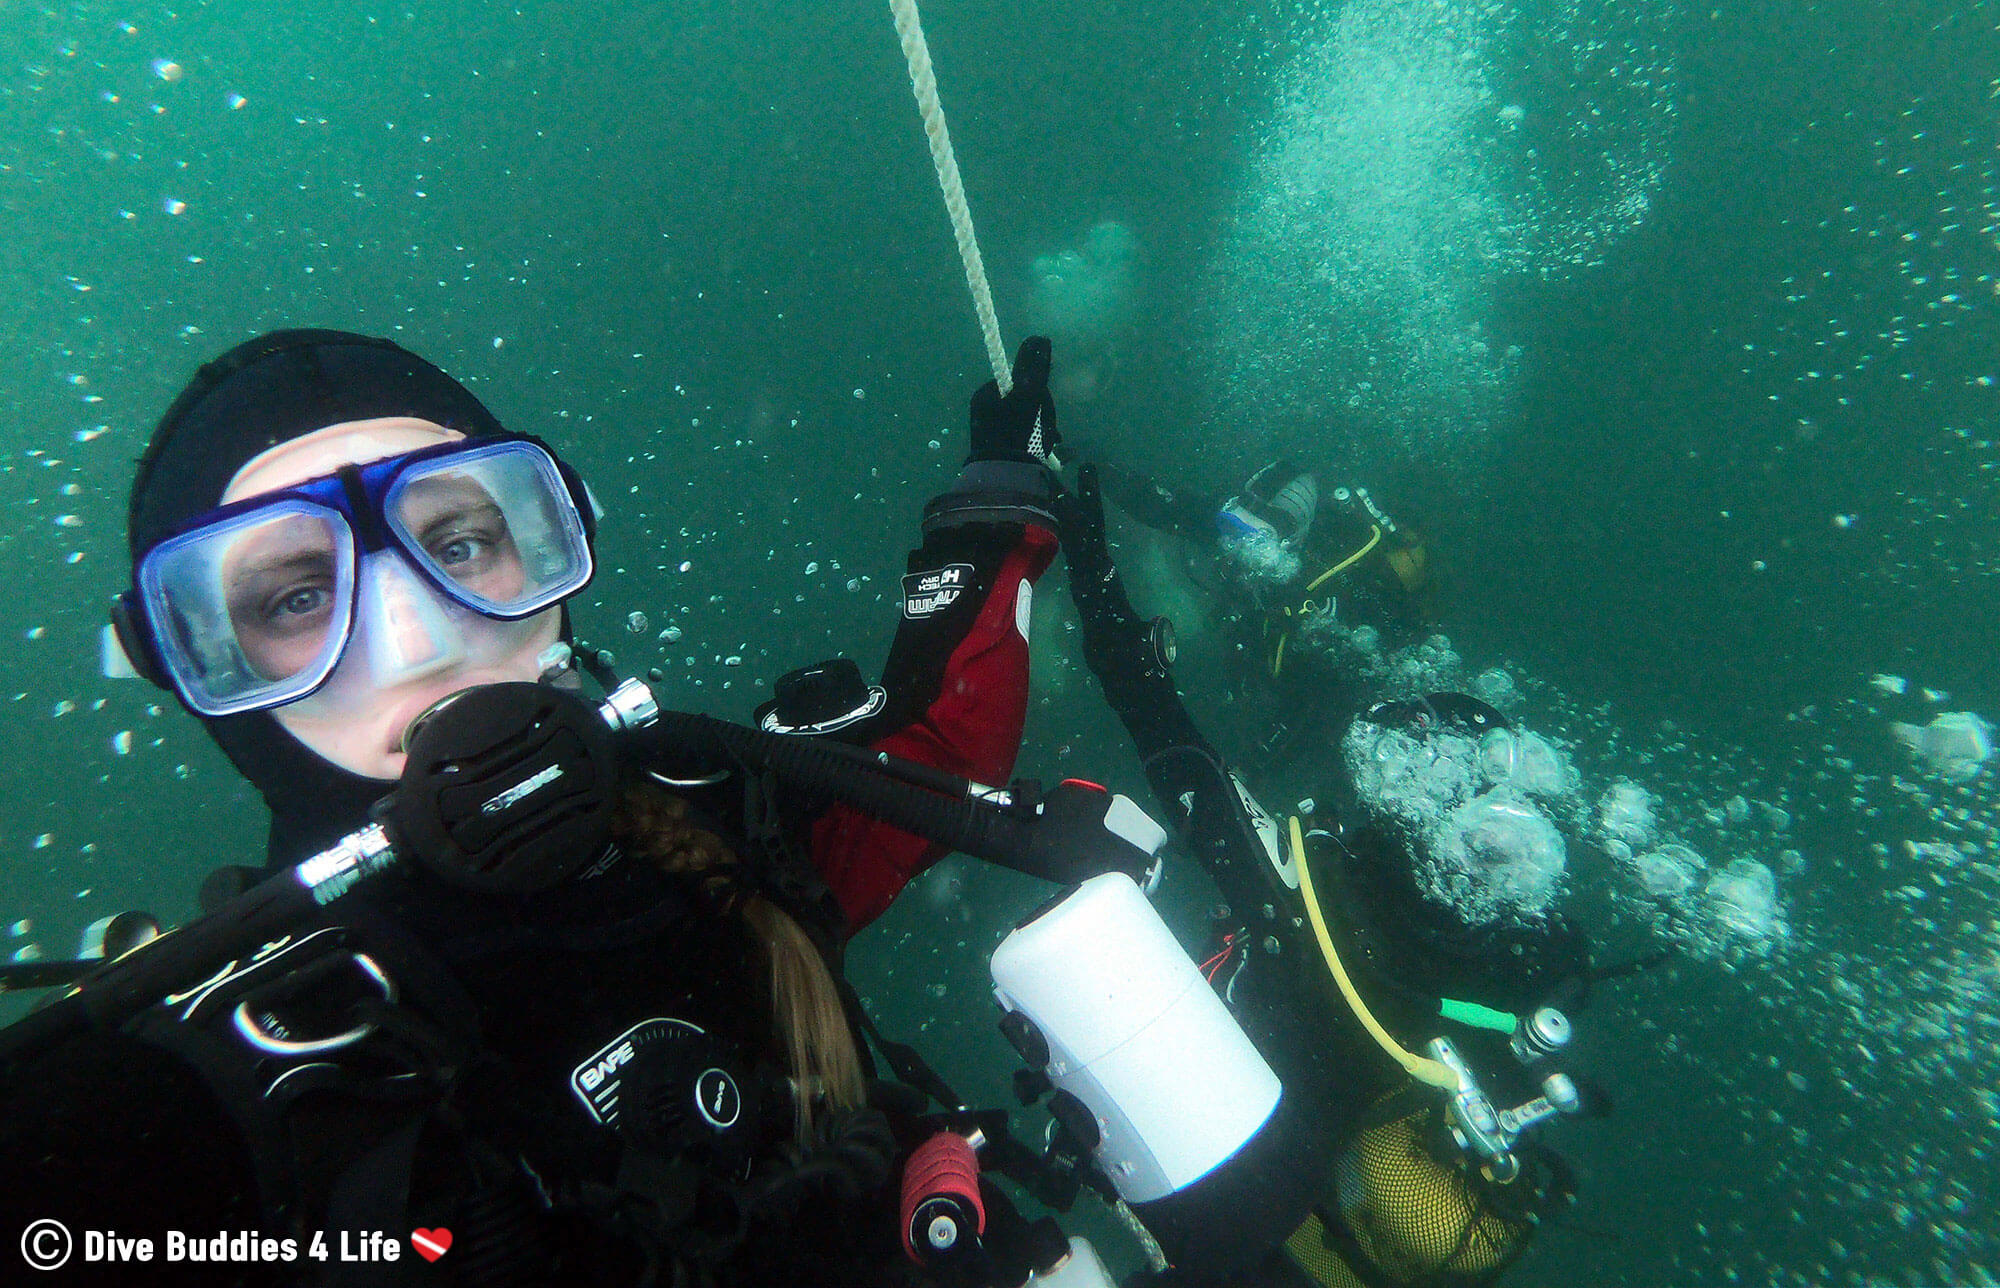 Ali Descending The Rope To A Shipwreck In Her Dive Gear With A Hood